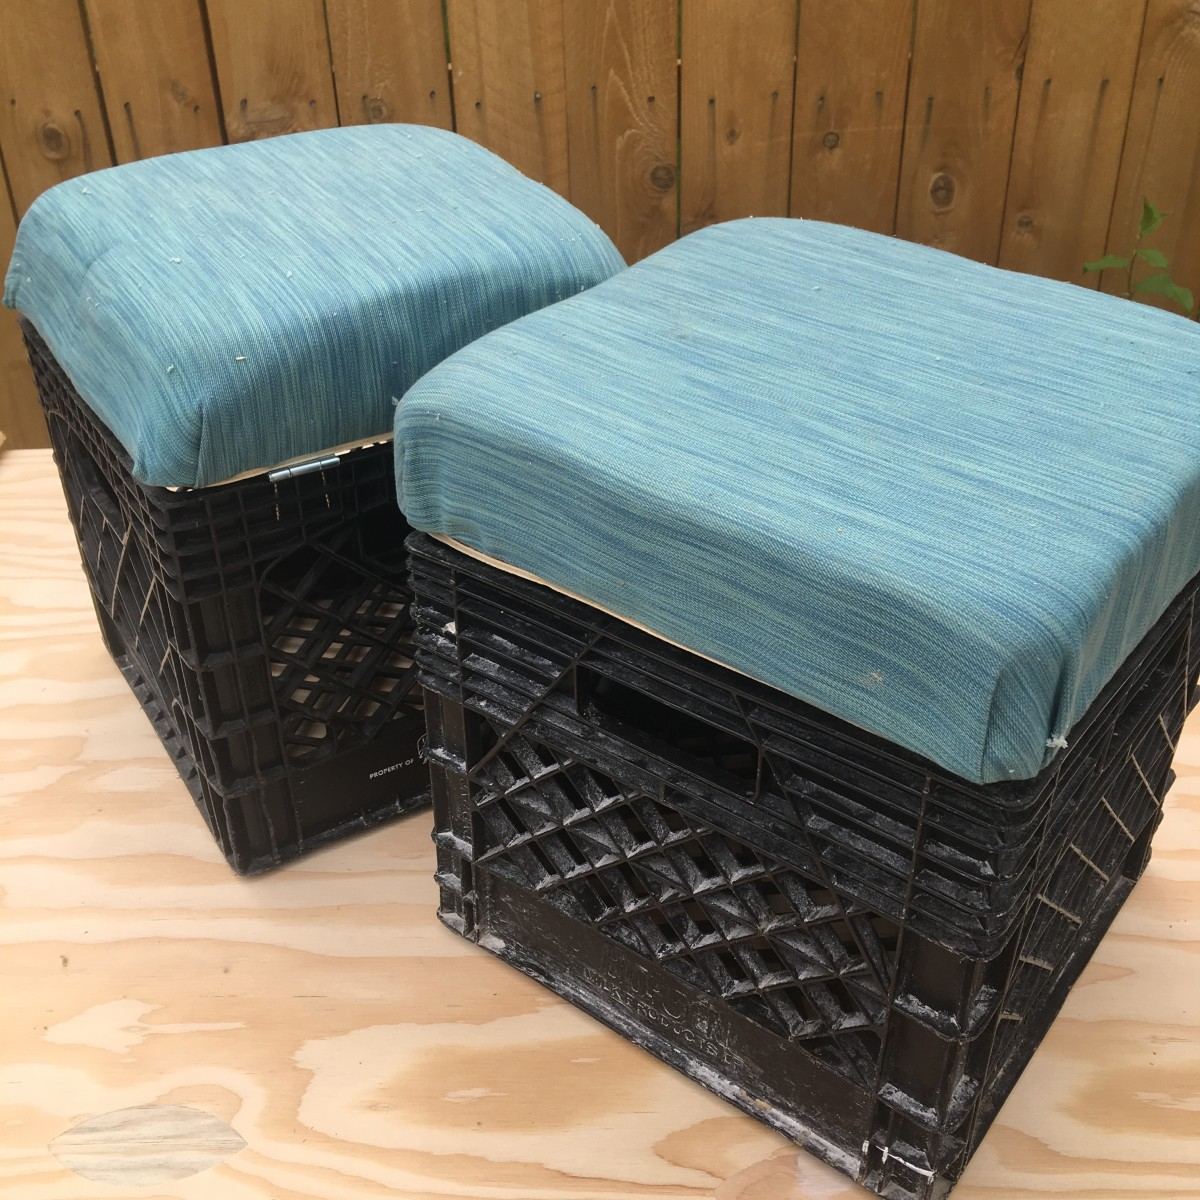 This article will show you how to convert an old milk crate into a cool and versatile ottoman that can also serve as a storage container.